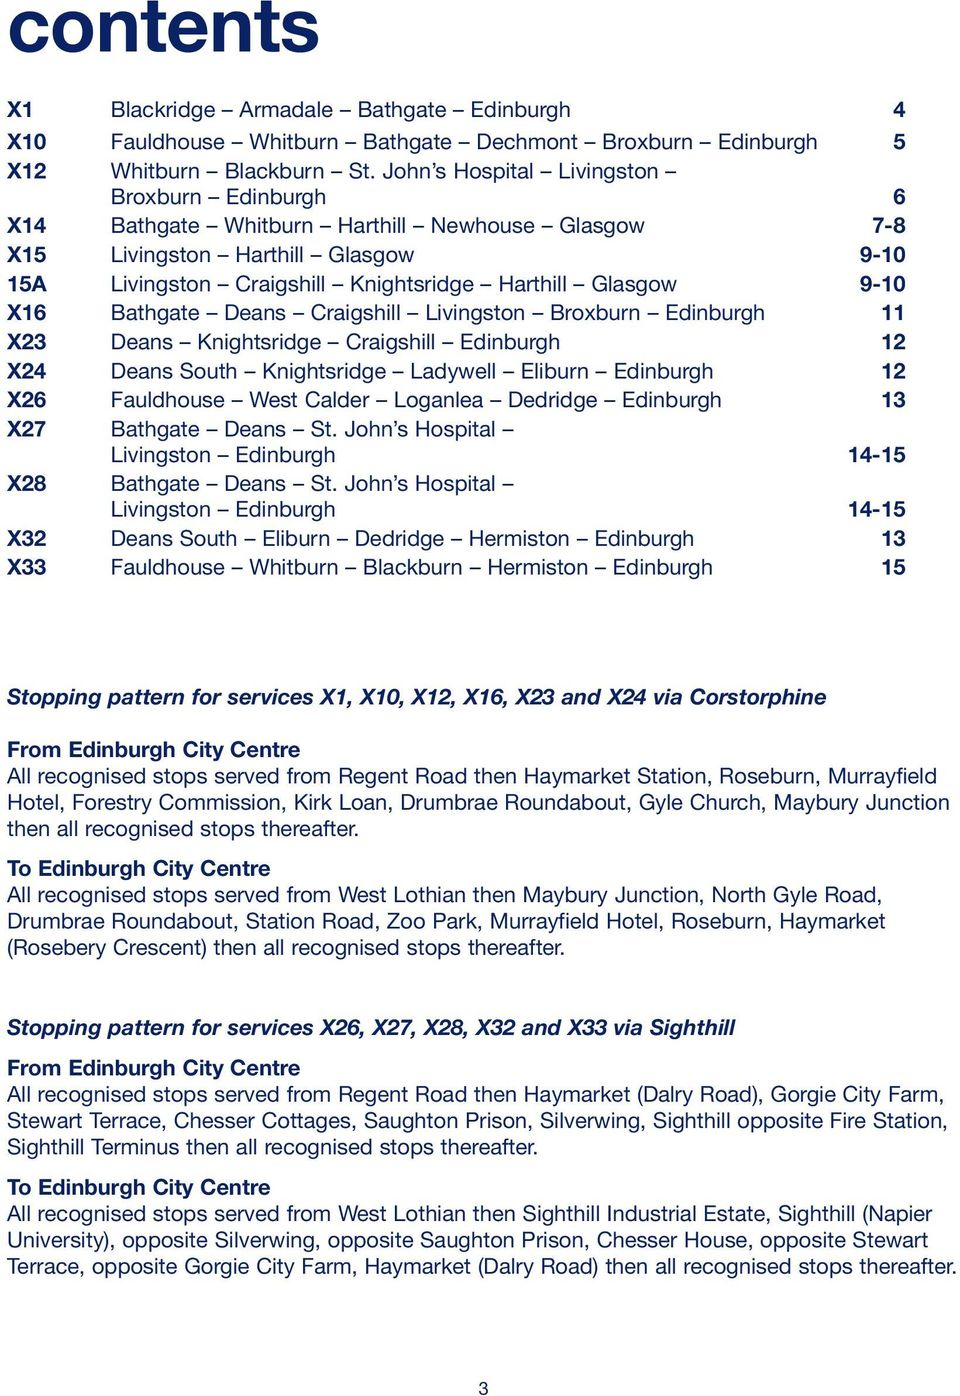 Express Services Bus Times Linking Edinburgh And Glasgow